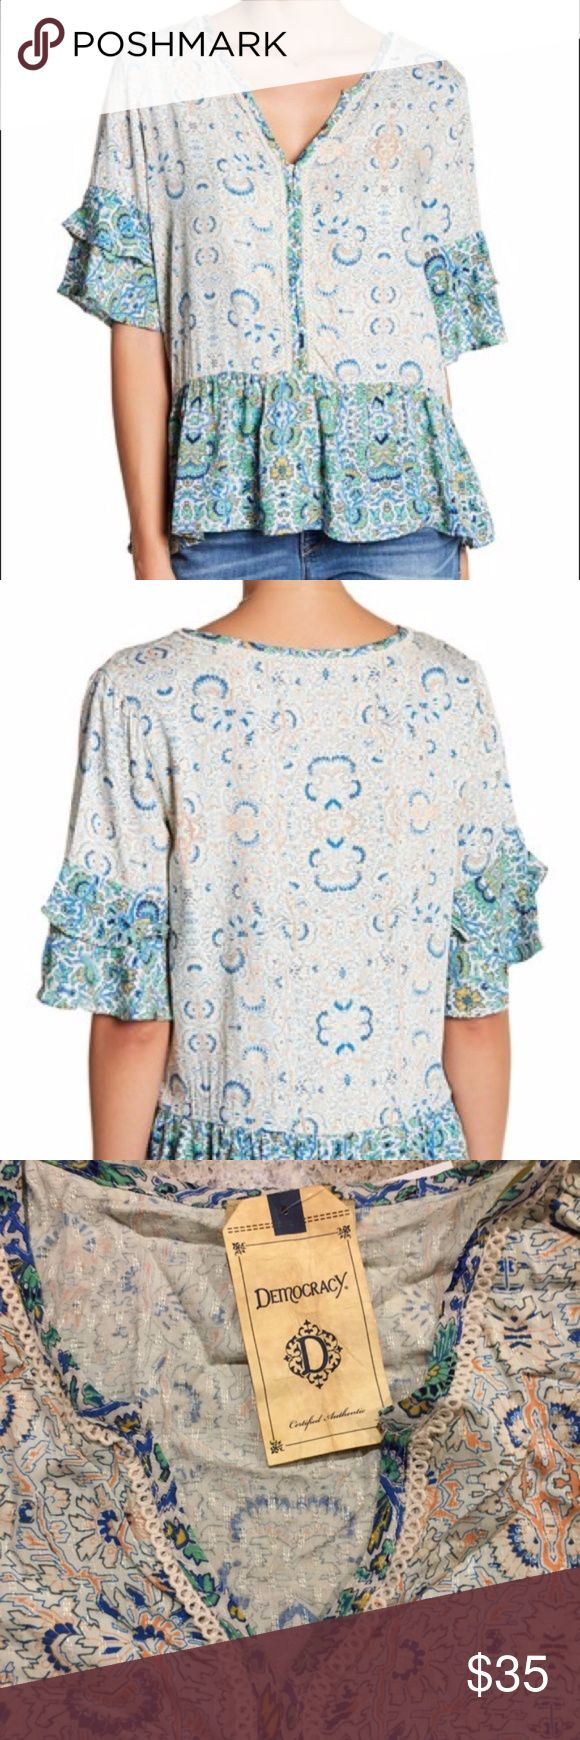 """Democracy Double Ruffle Print Blouse Double ruffle print blouse by Democracy at Nordstrom  - V-neck - Elbow length sleeves with double ruffle details - Allover print - Knit trim - Hi-lo hem - Approx. 25.5"""" shortest length, 28.5"""" longest length - Shell/contrast: 100% rayon Democracy Tops Blouses"""